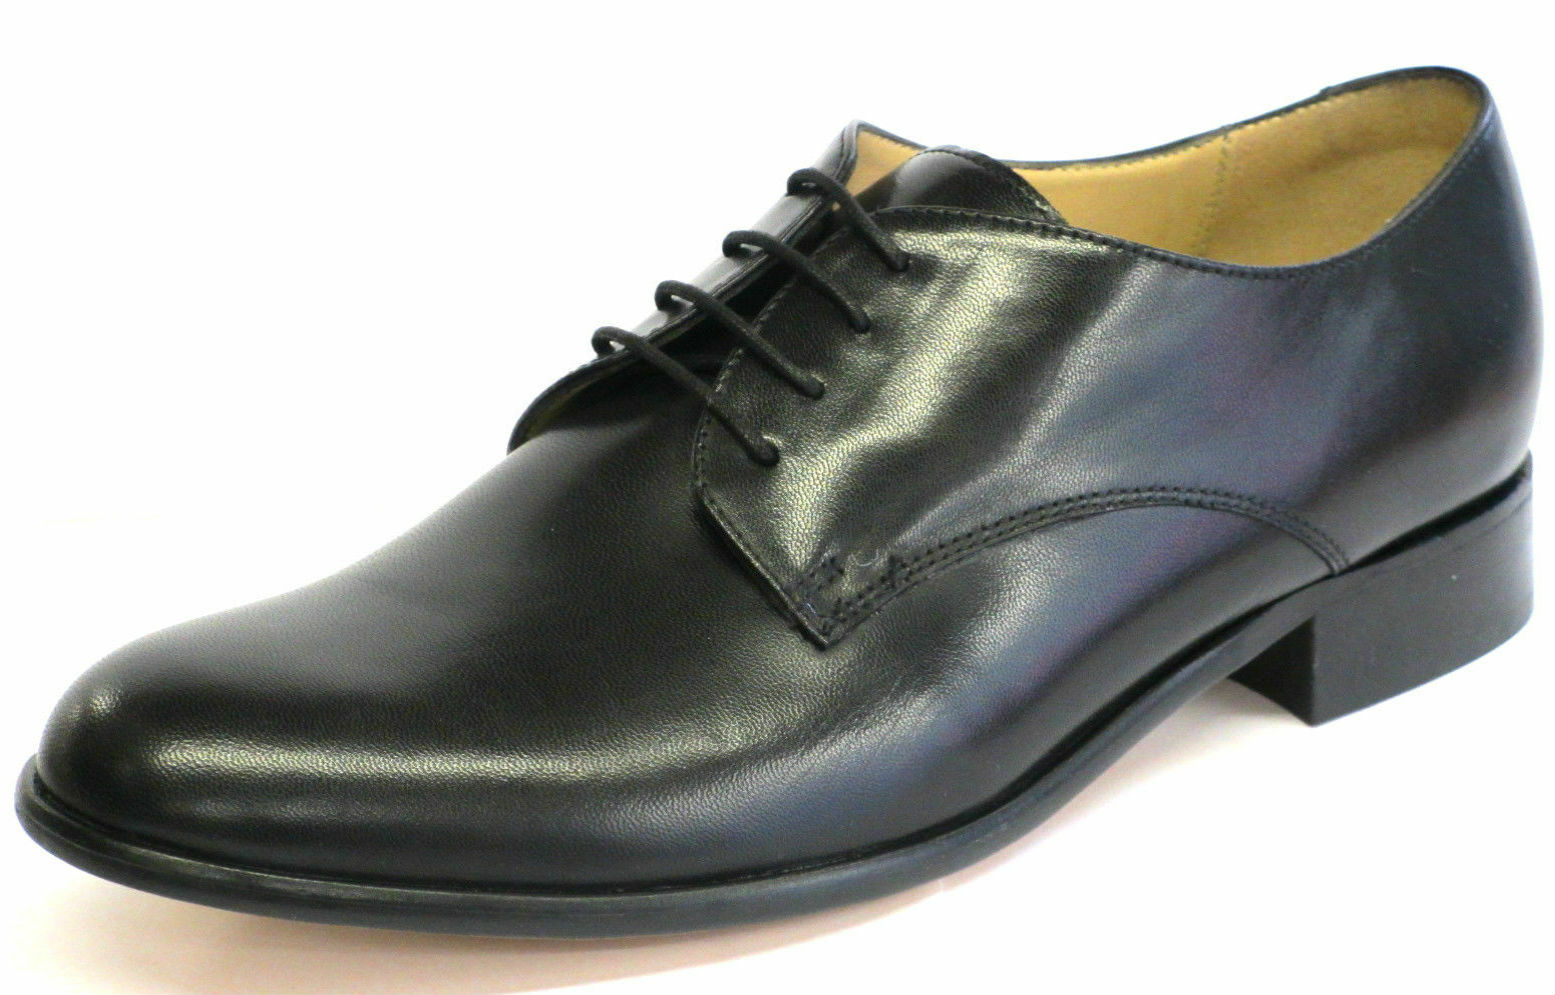 herren THOMAS BlauNT schuhe schwarz LEATHER FITTING -G STYLE - TEMPLEMEADS